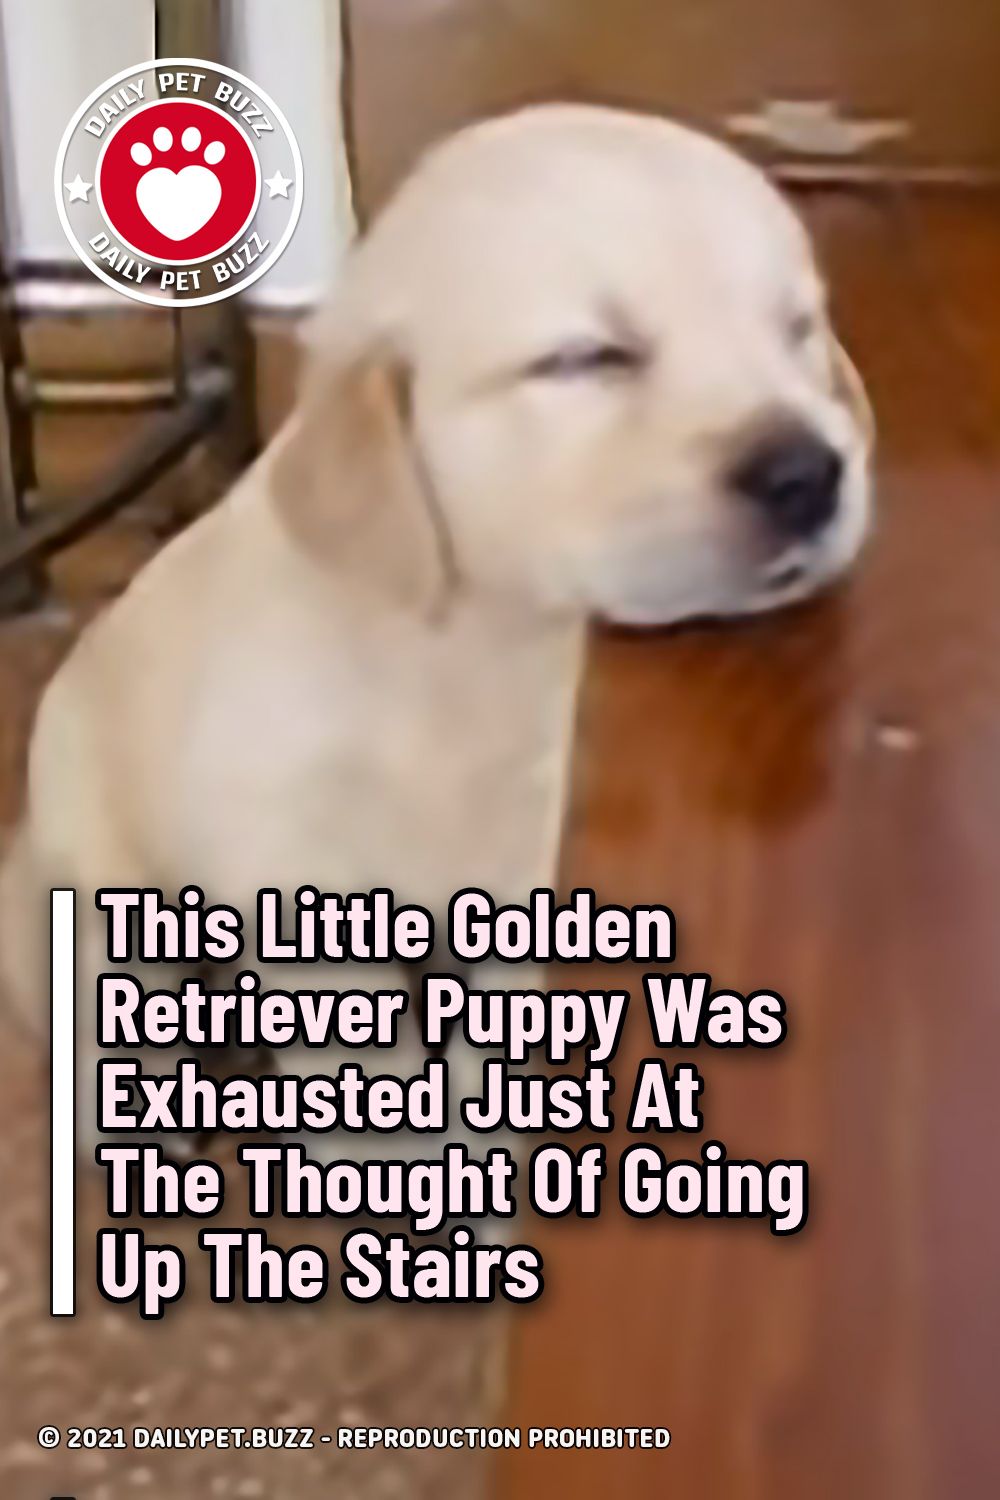 This Little Golden Retriever Puppy Was Exhausted Just At The Thought Of Going Up The Stairs